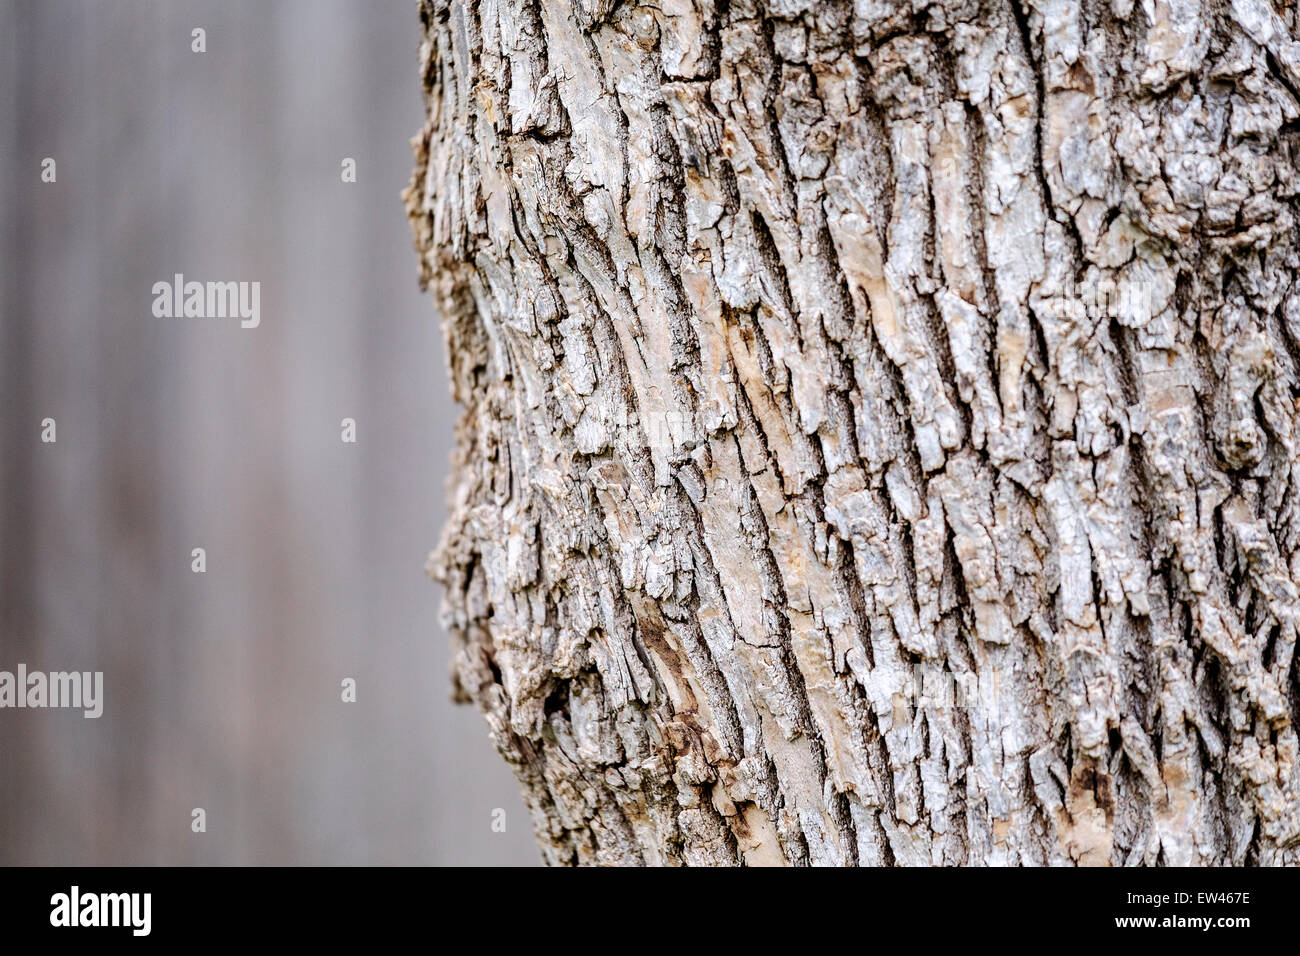 The bark of a Common Ash tree, Fraxinus excelsior, grown in Oklahoma, USA. - Stock Image